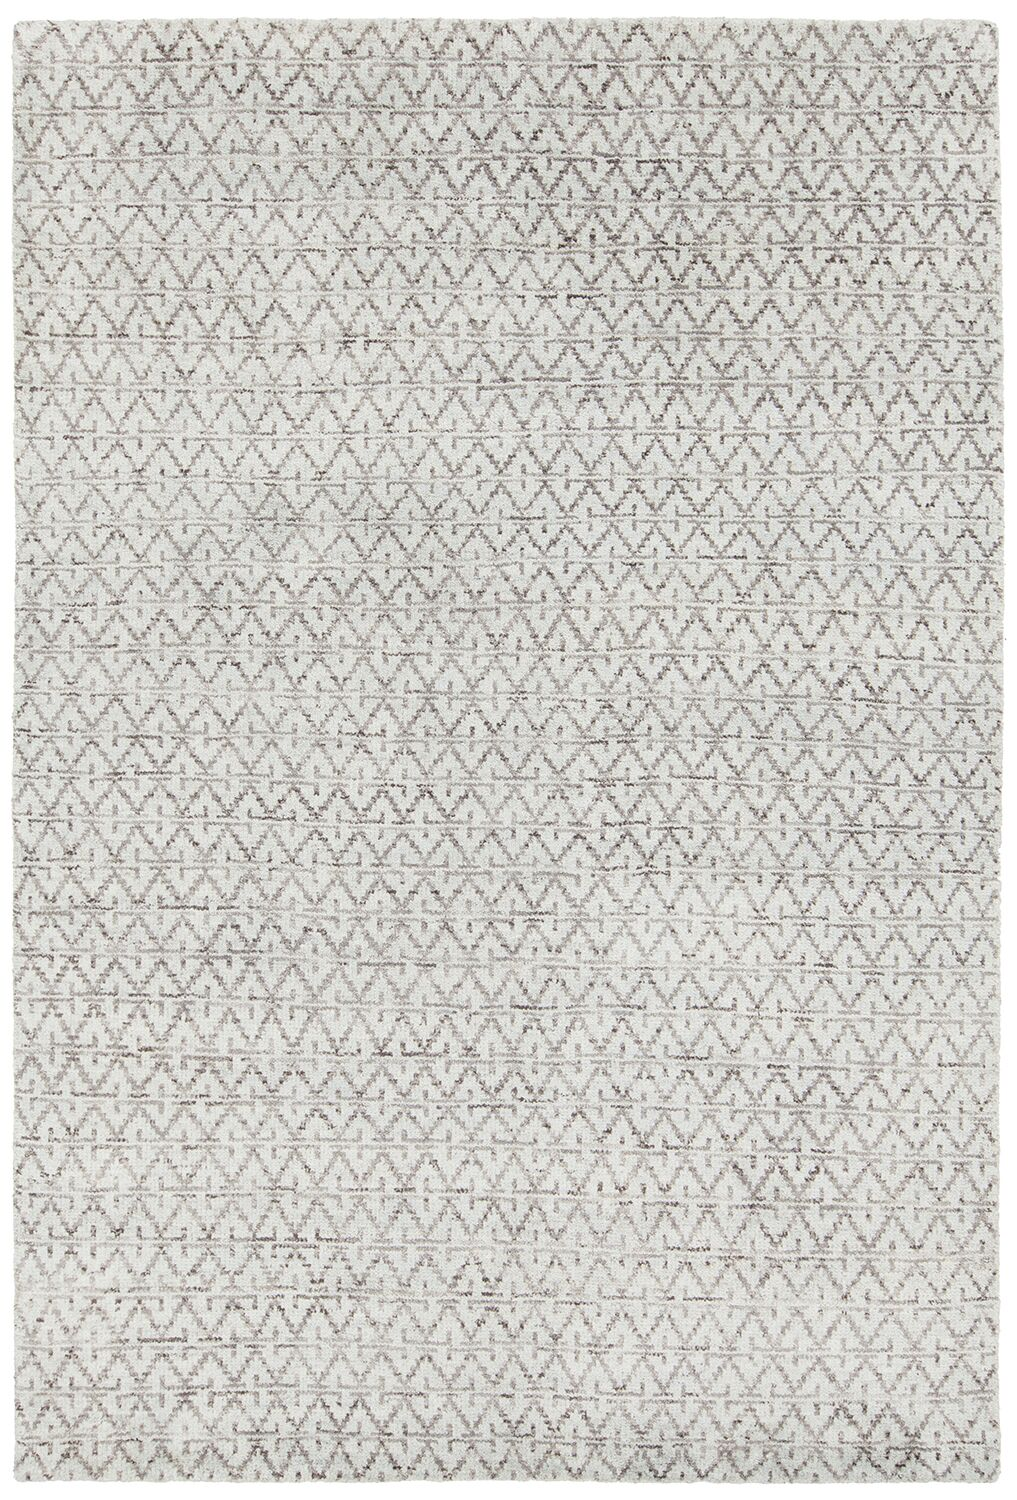 Denwood Hand-Knotted Gray/Blue Area Rug Rug Size: 5' x 7'6